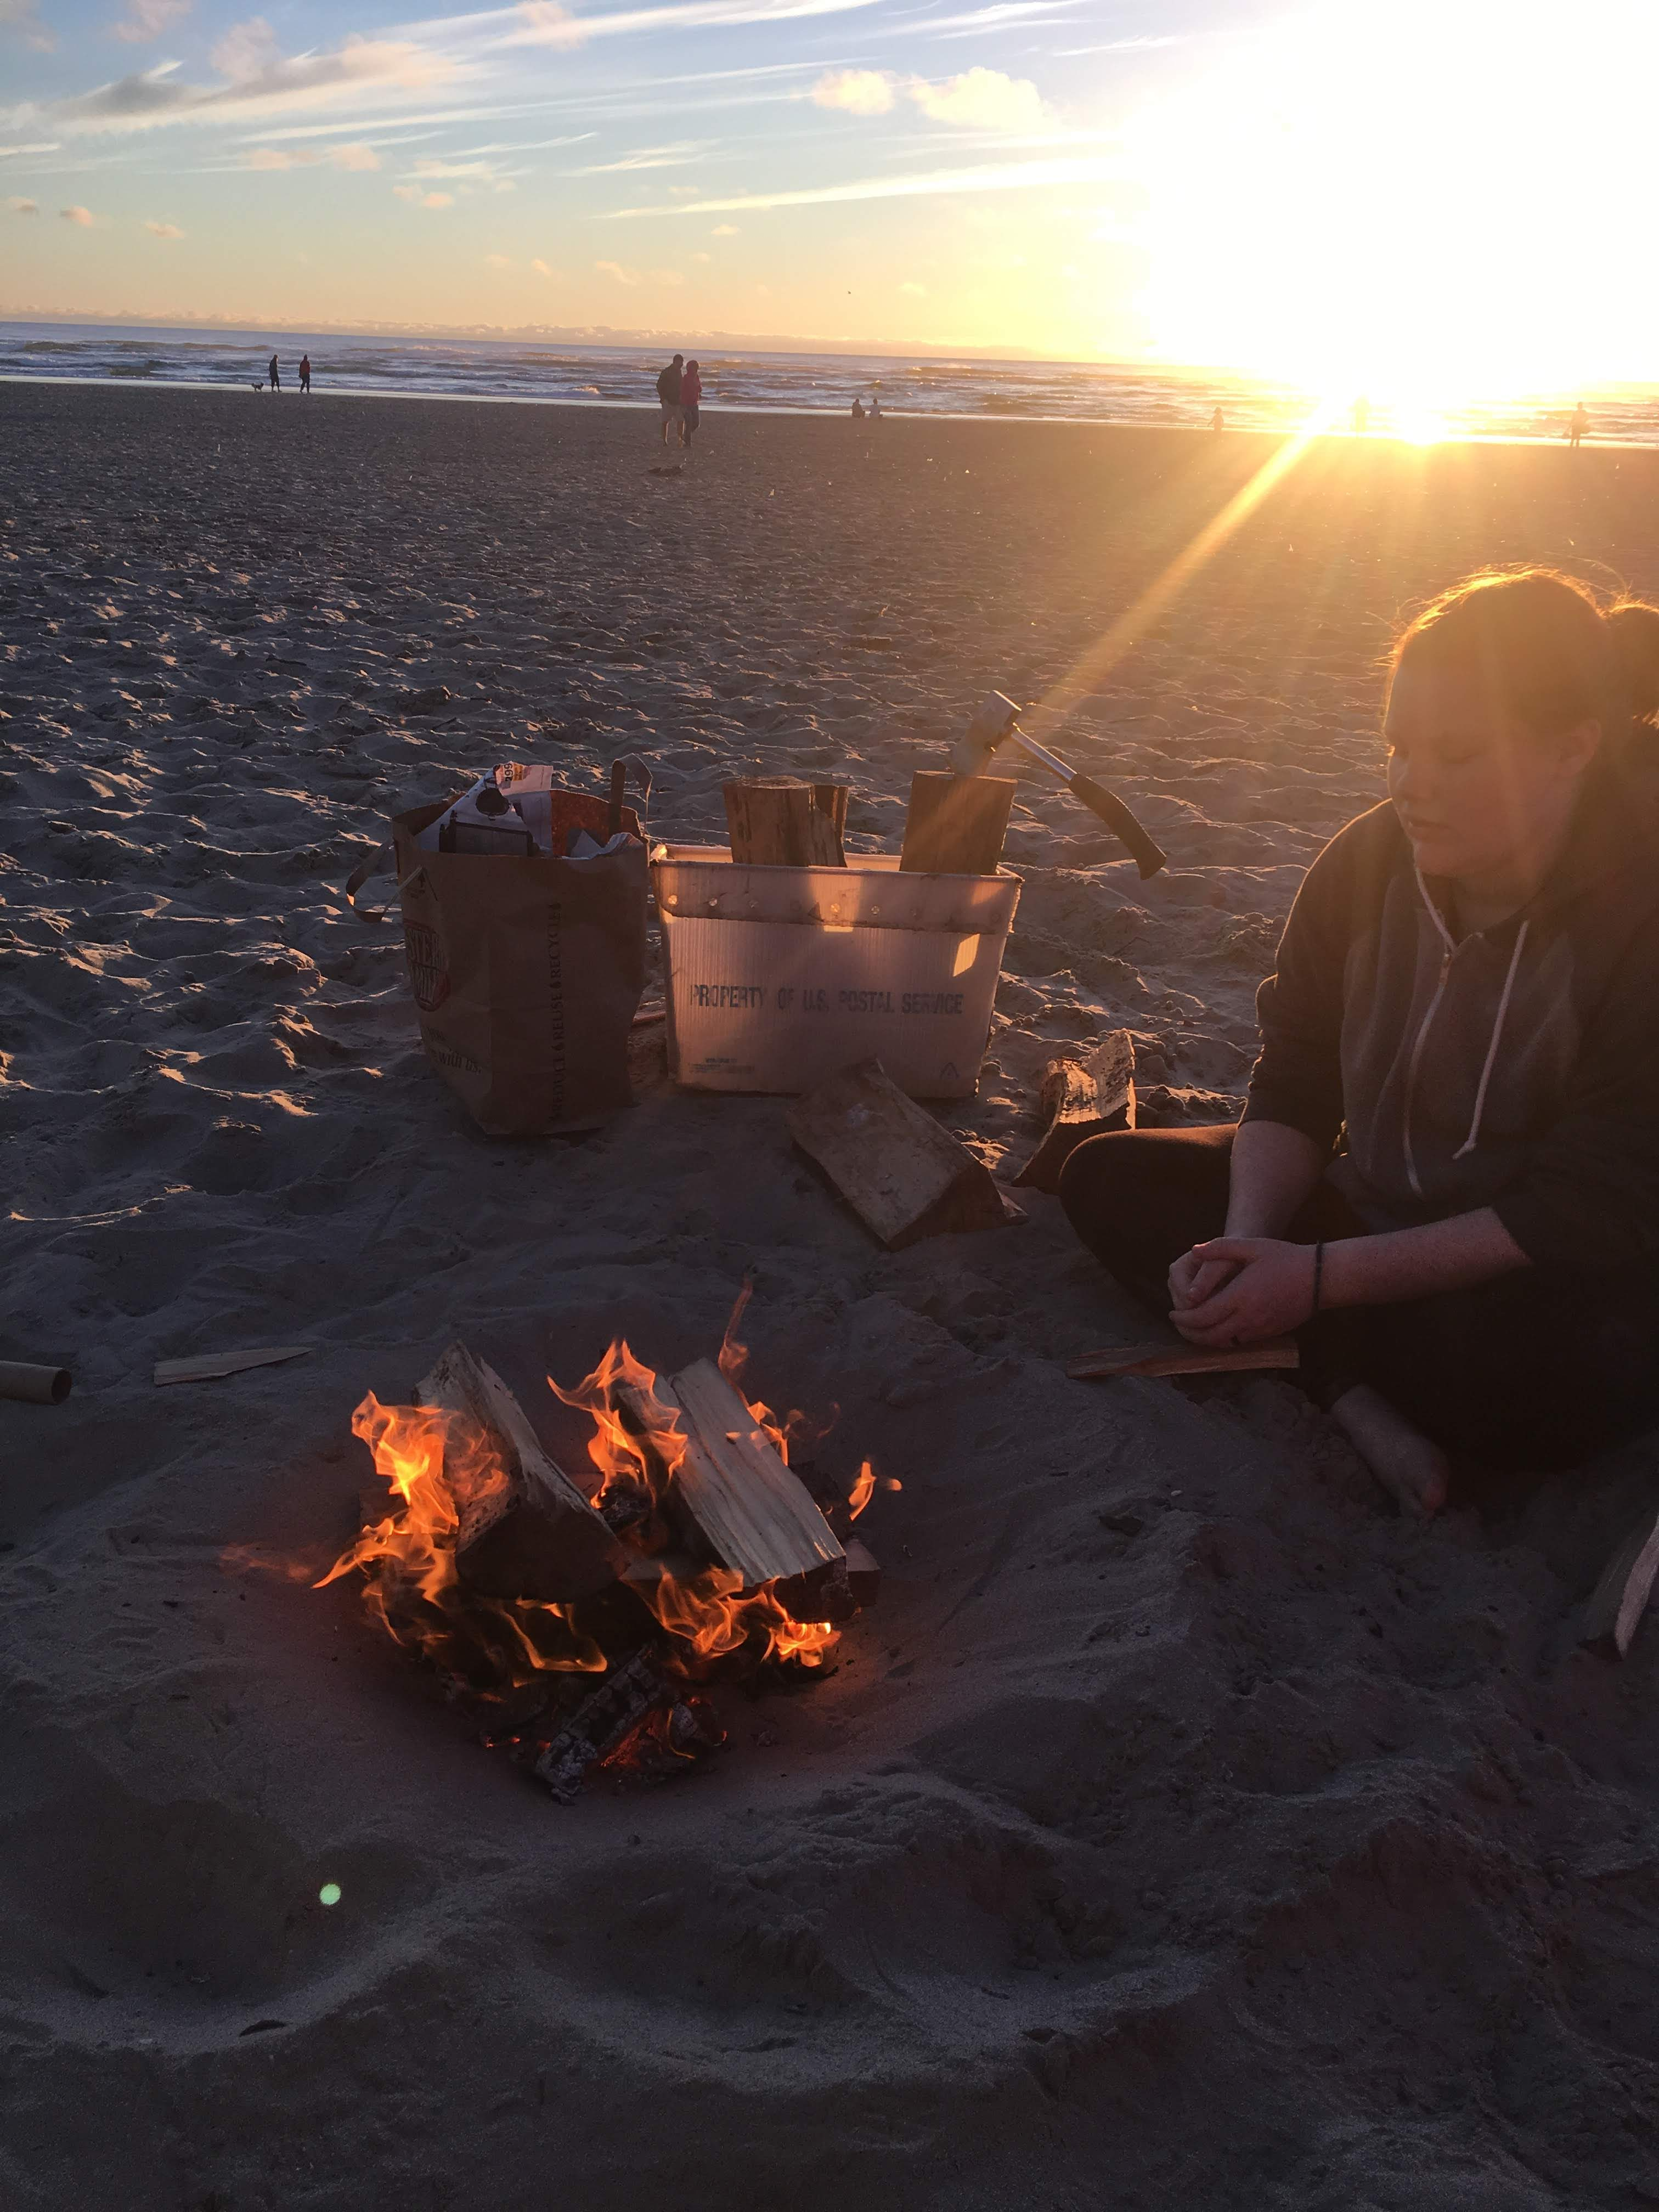 CannonBeach.netbonfire